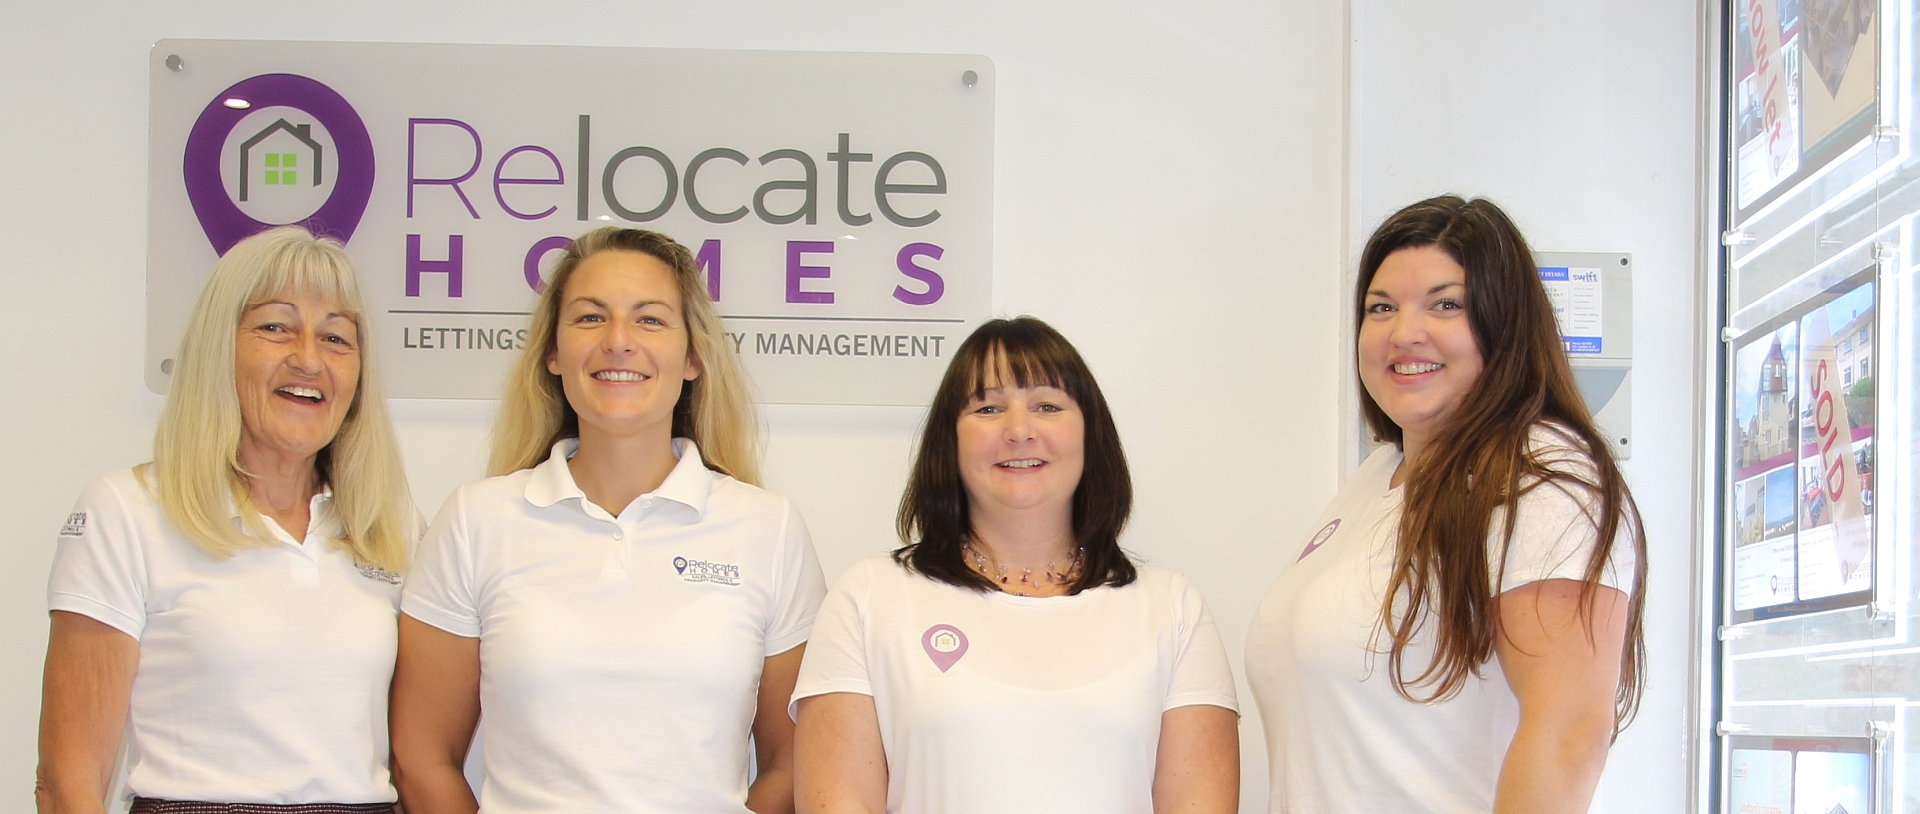 Relocate Homes - The Team